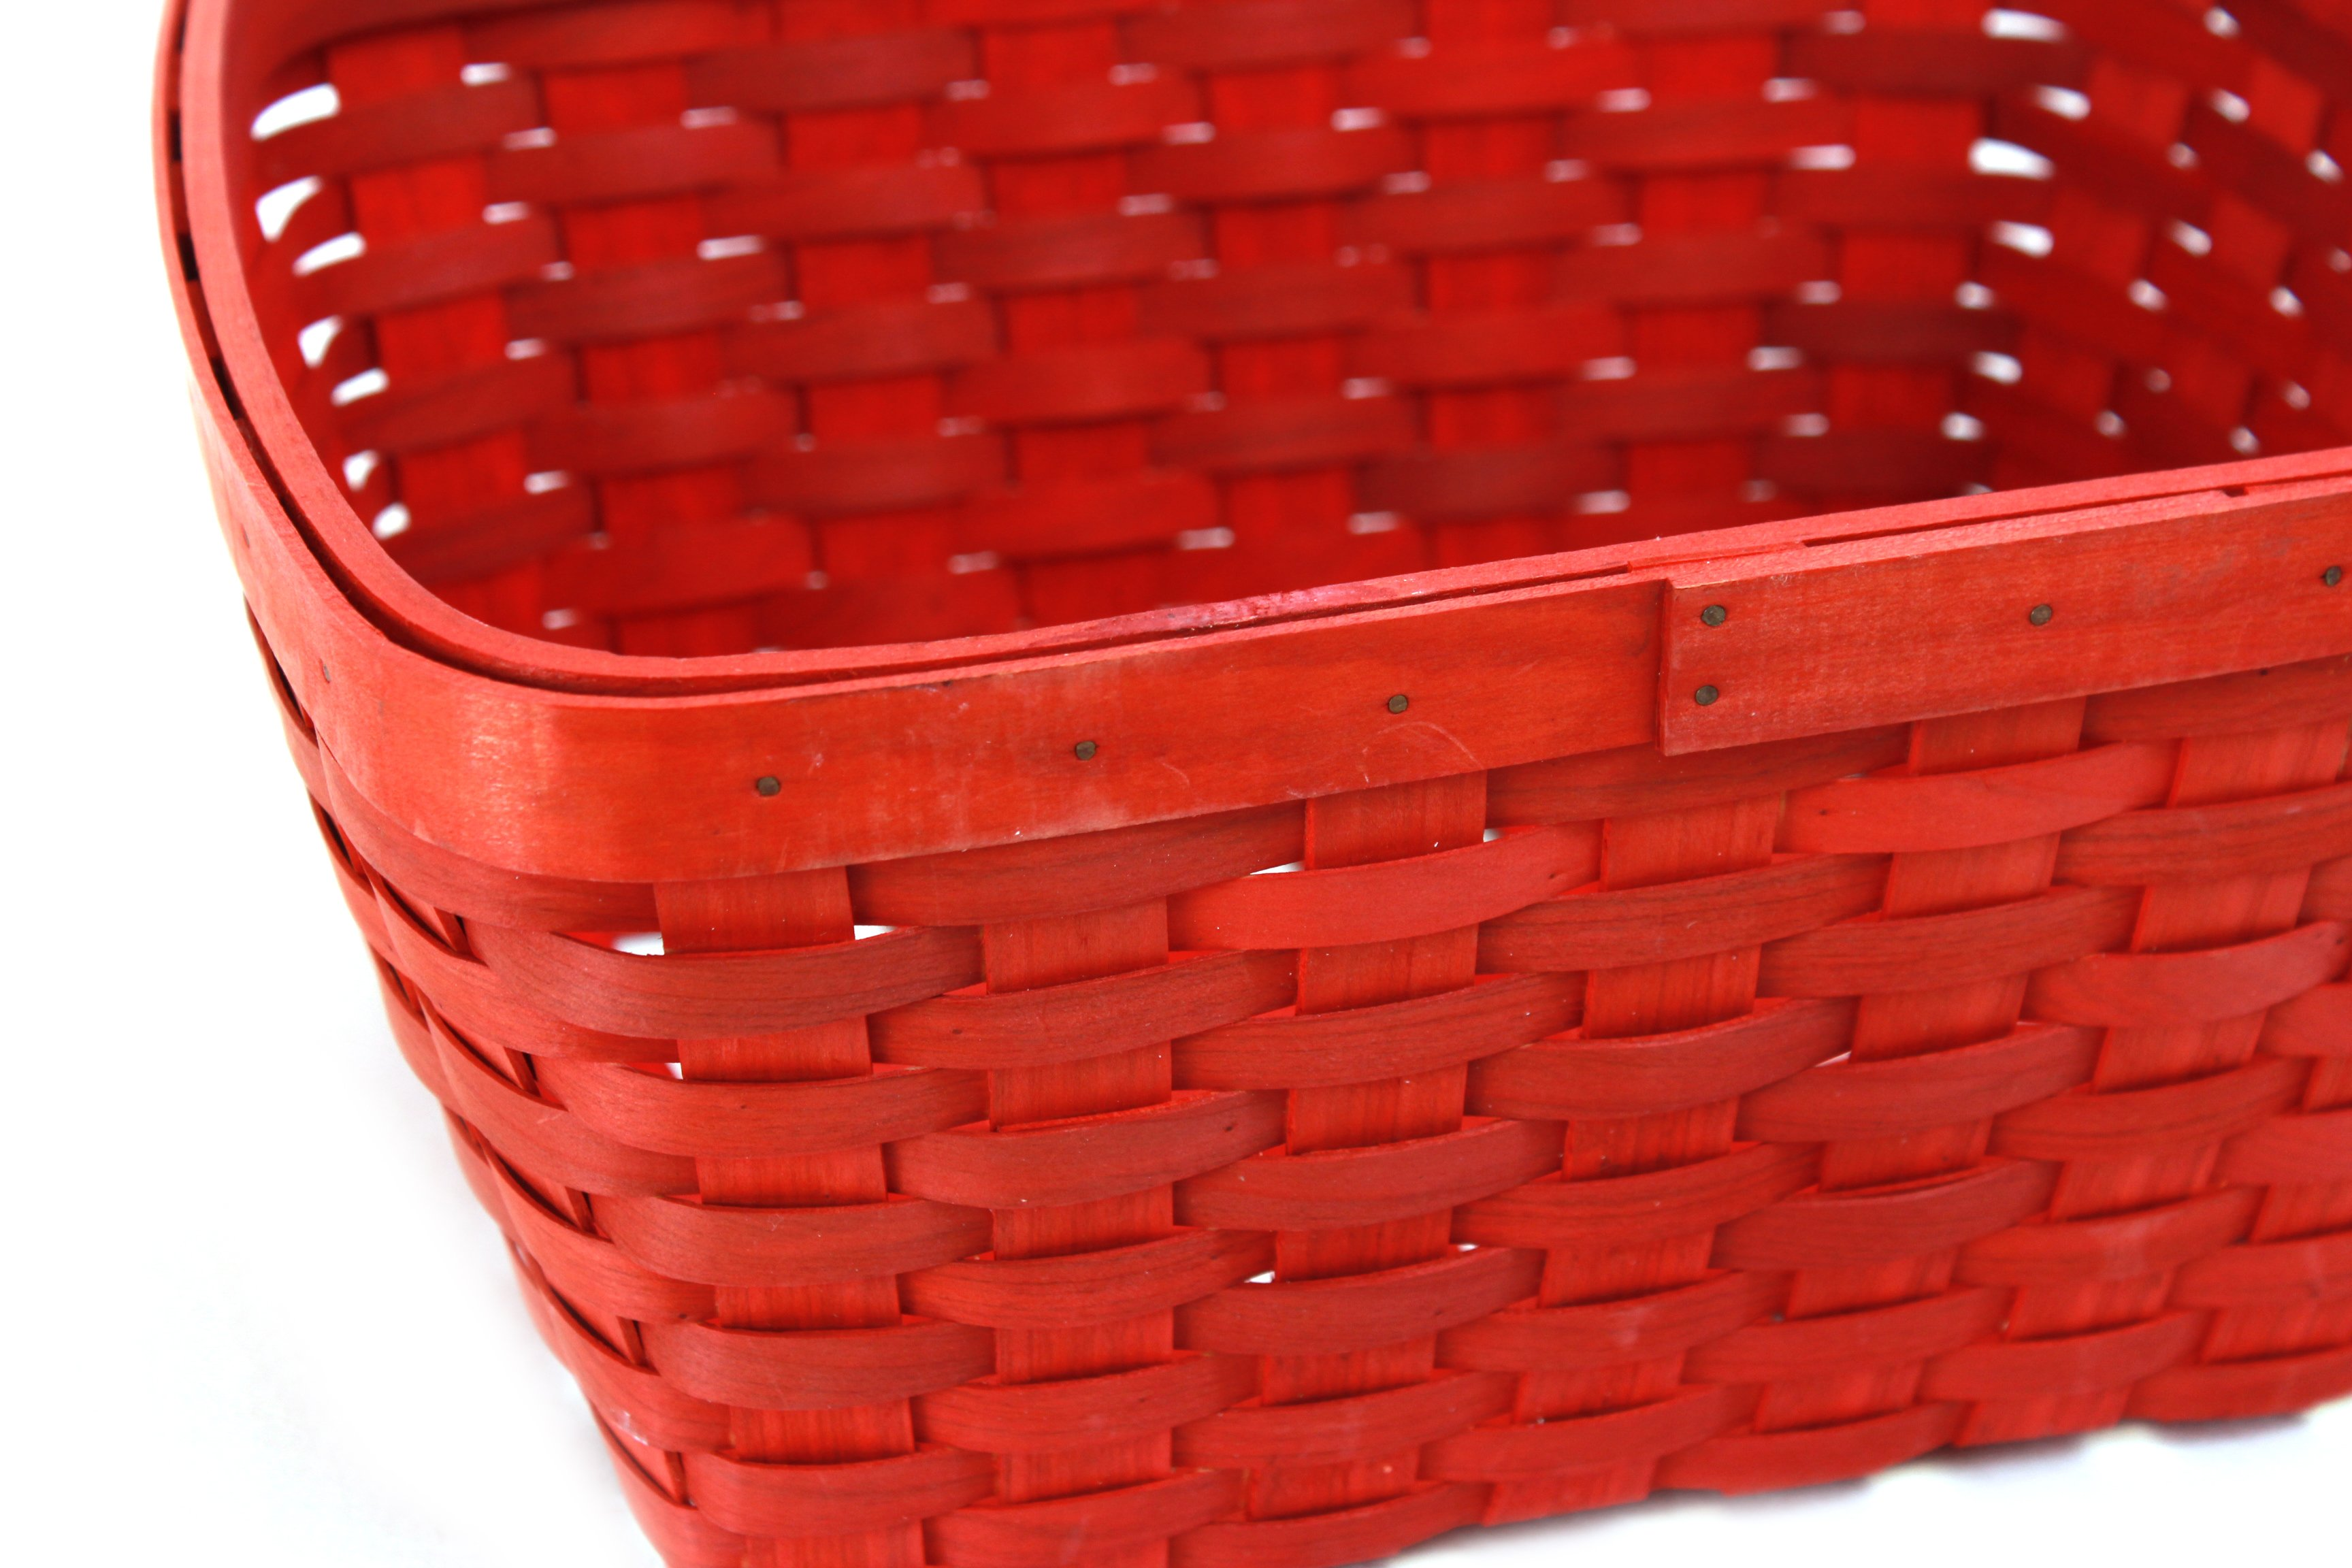 Red Rectangular Baskets close